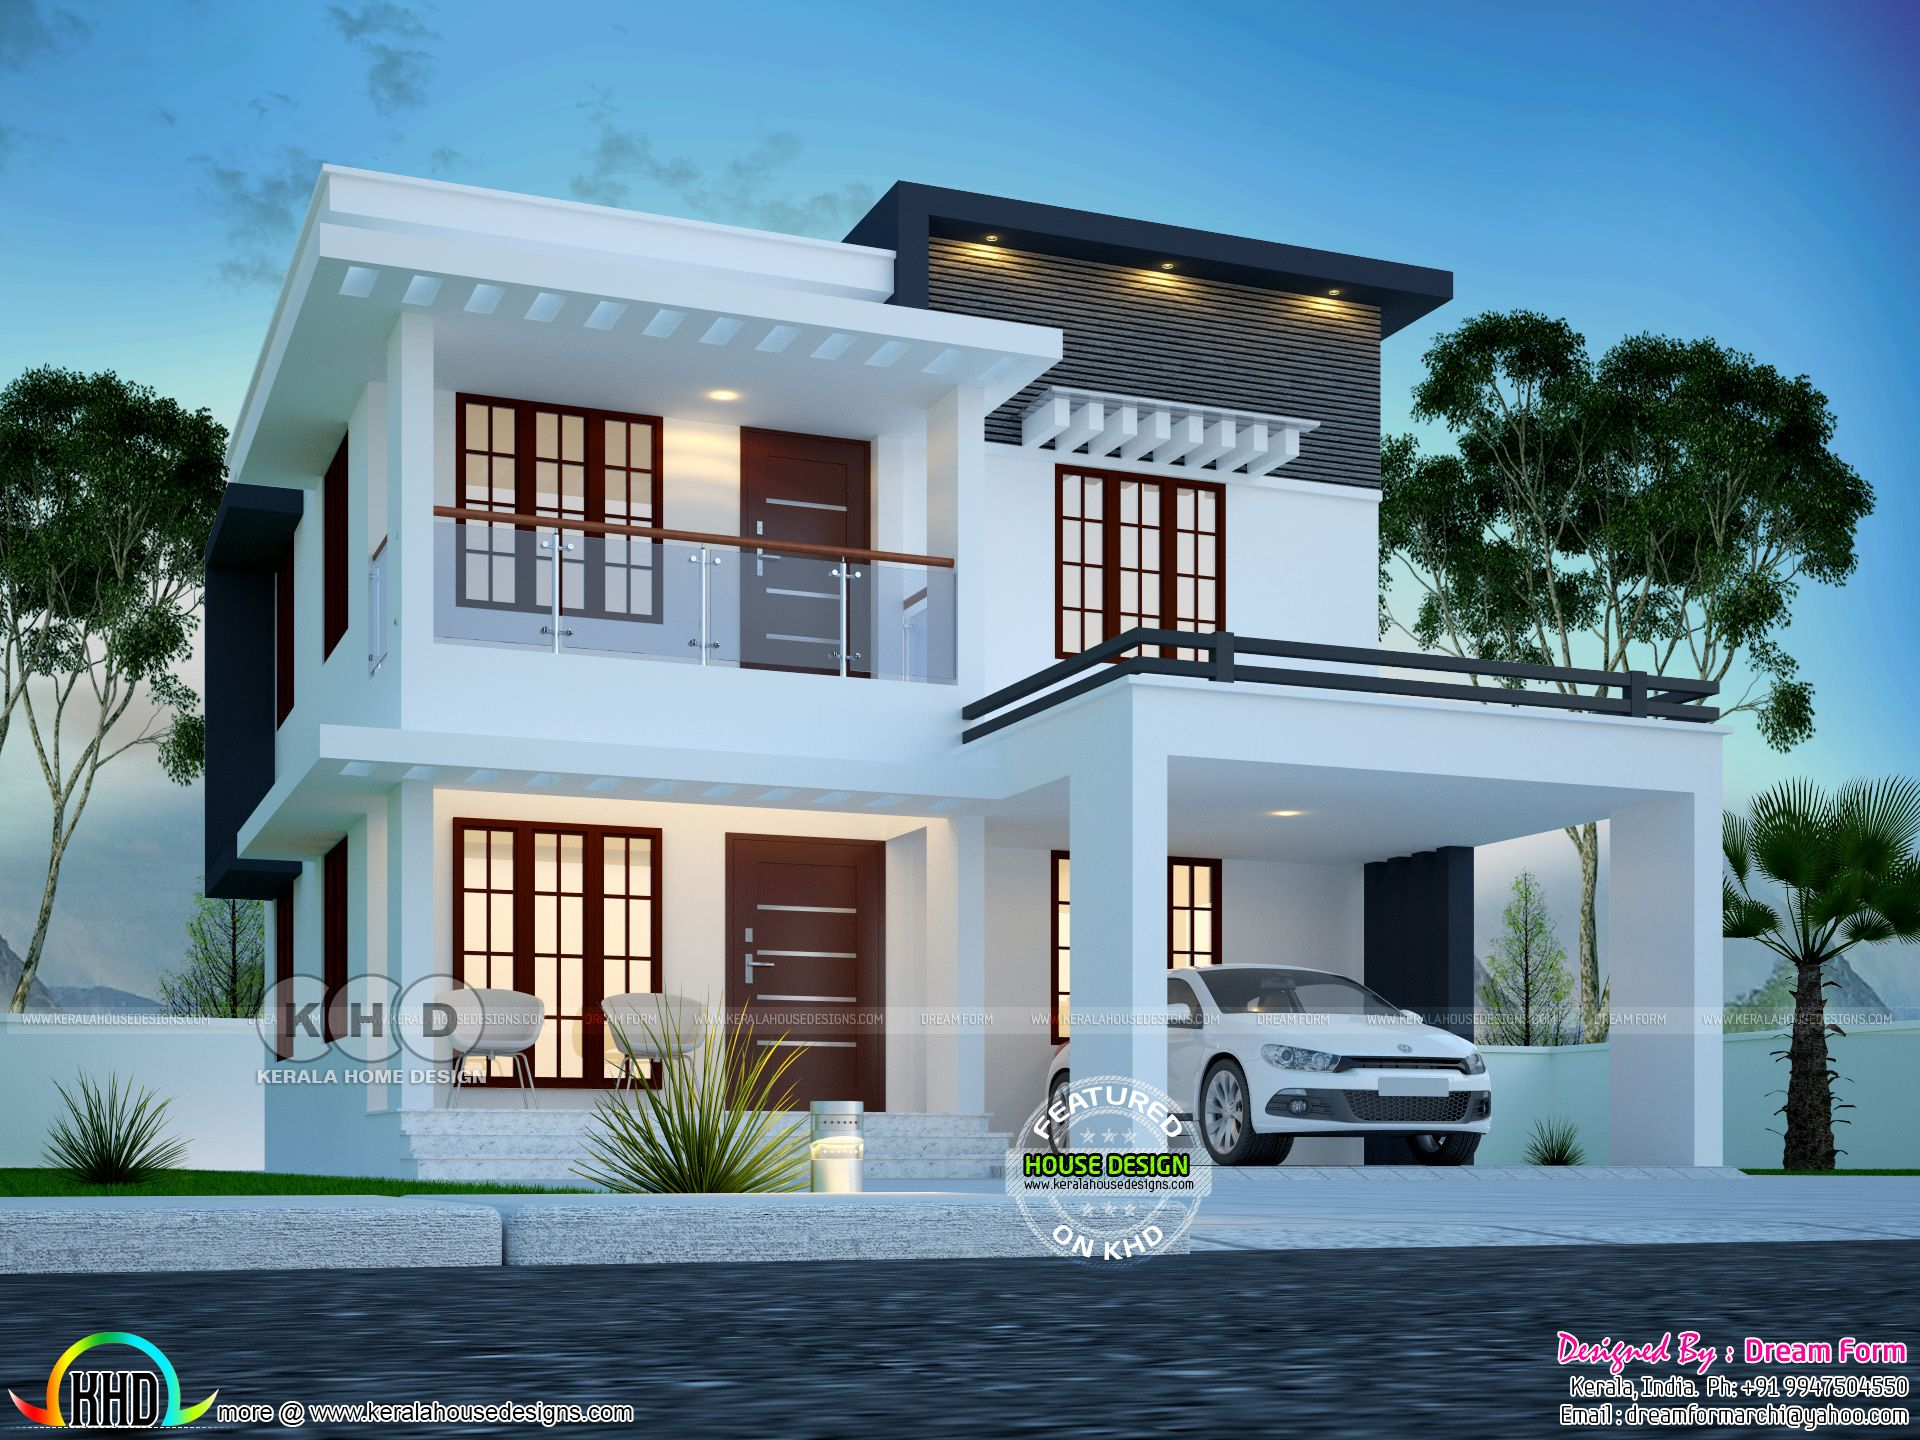 Low cost home 1610 sq-ft home design | House roof design ...